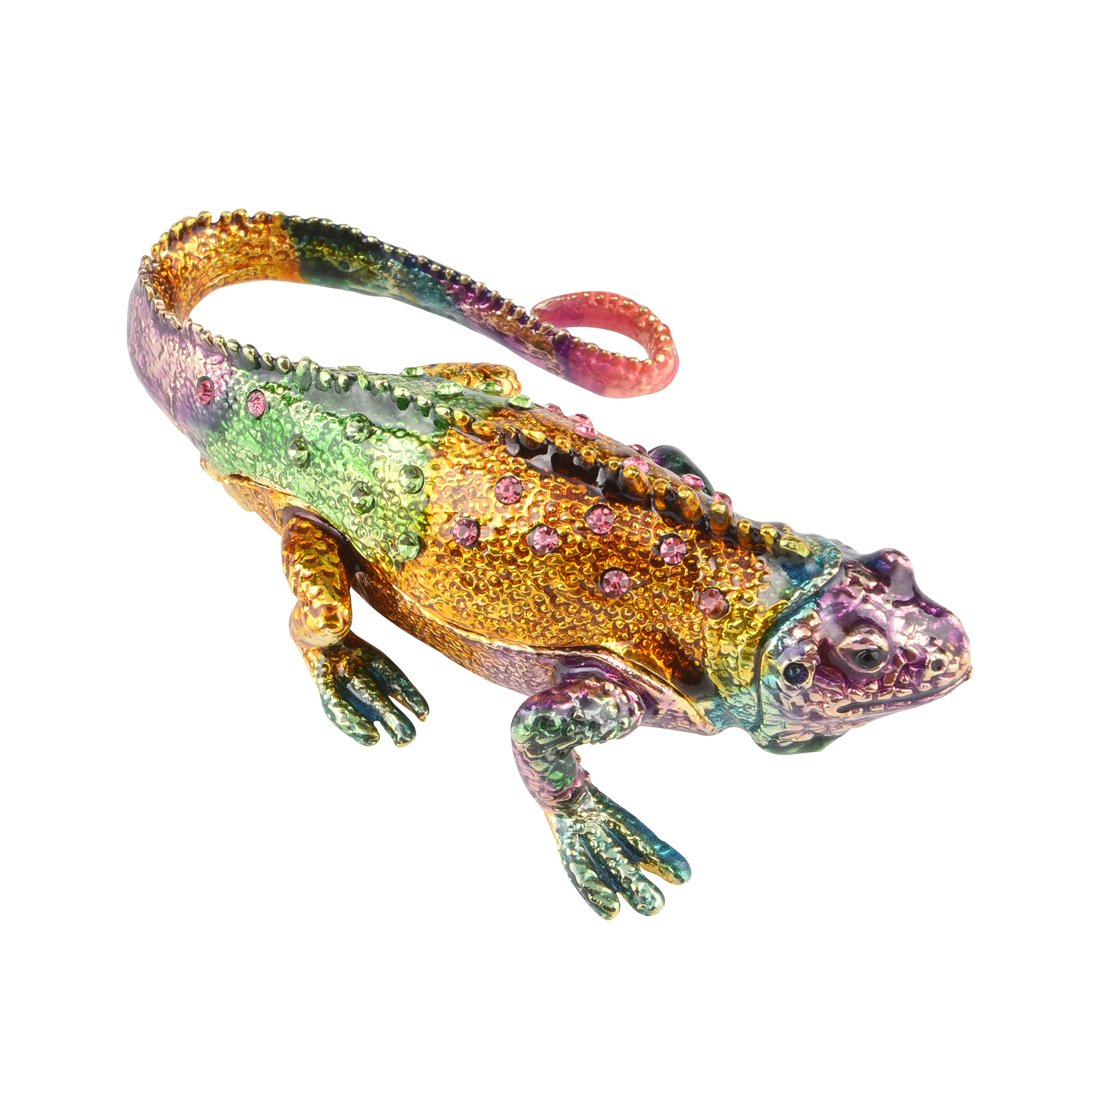 Hophen Enameled Crystal Colorful Lizard Trinket Box Chameleon Collectible Figurine 4'' (colorful)